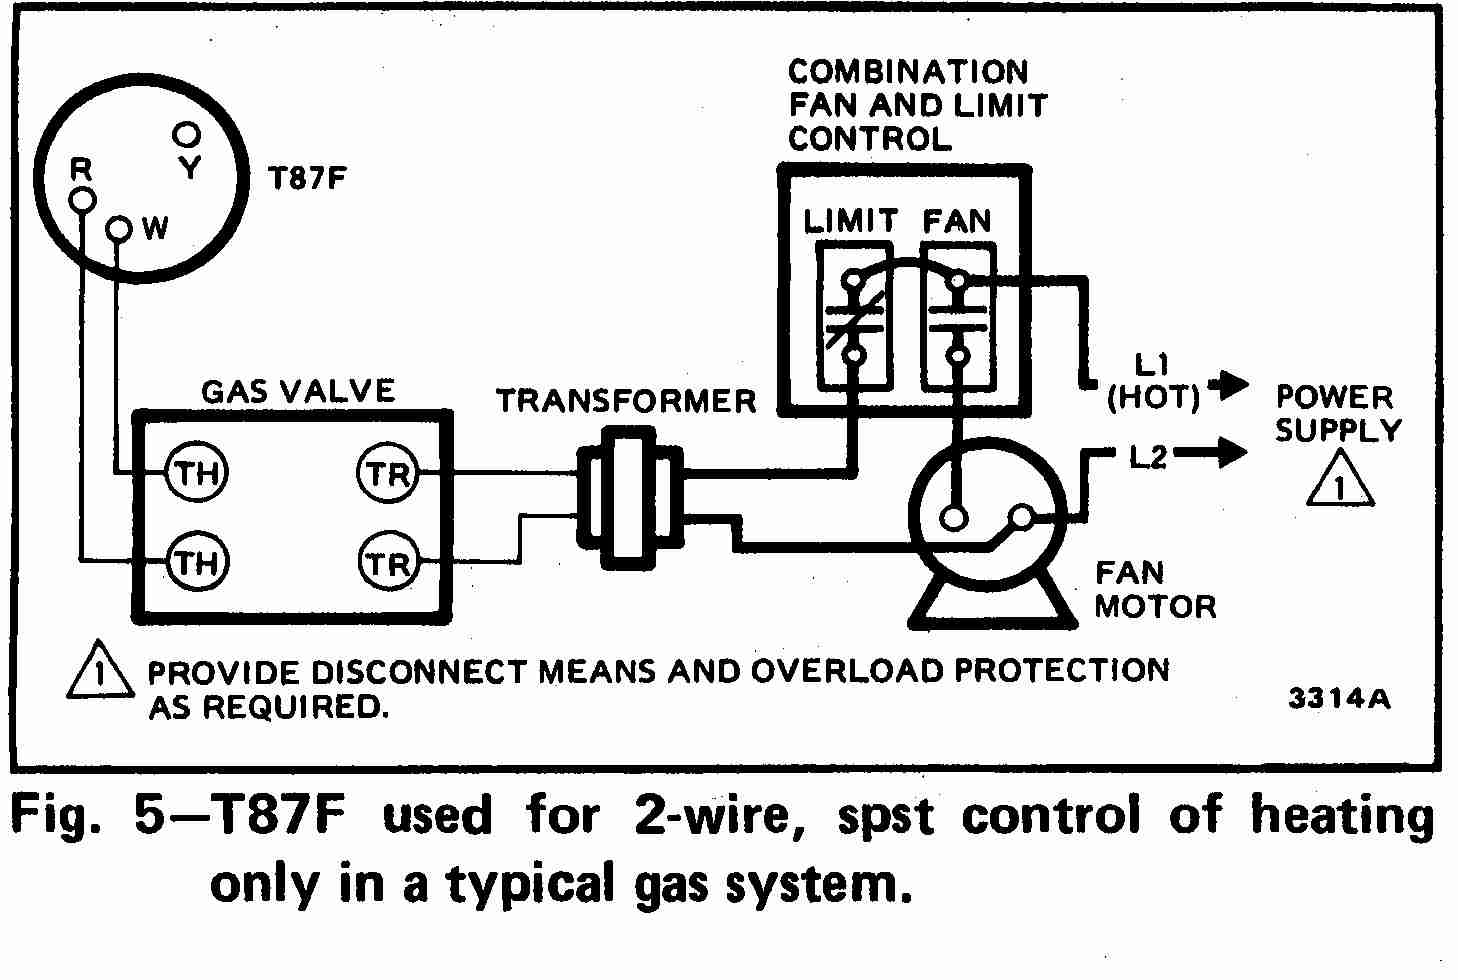 room thermostat wiring diagrams for hvac systems rh inspectapedia com 3 Wire Thermostat Wiring Thermostat Wiring Color Code